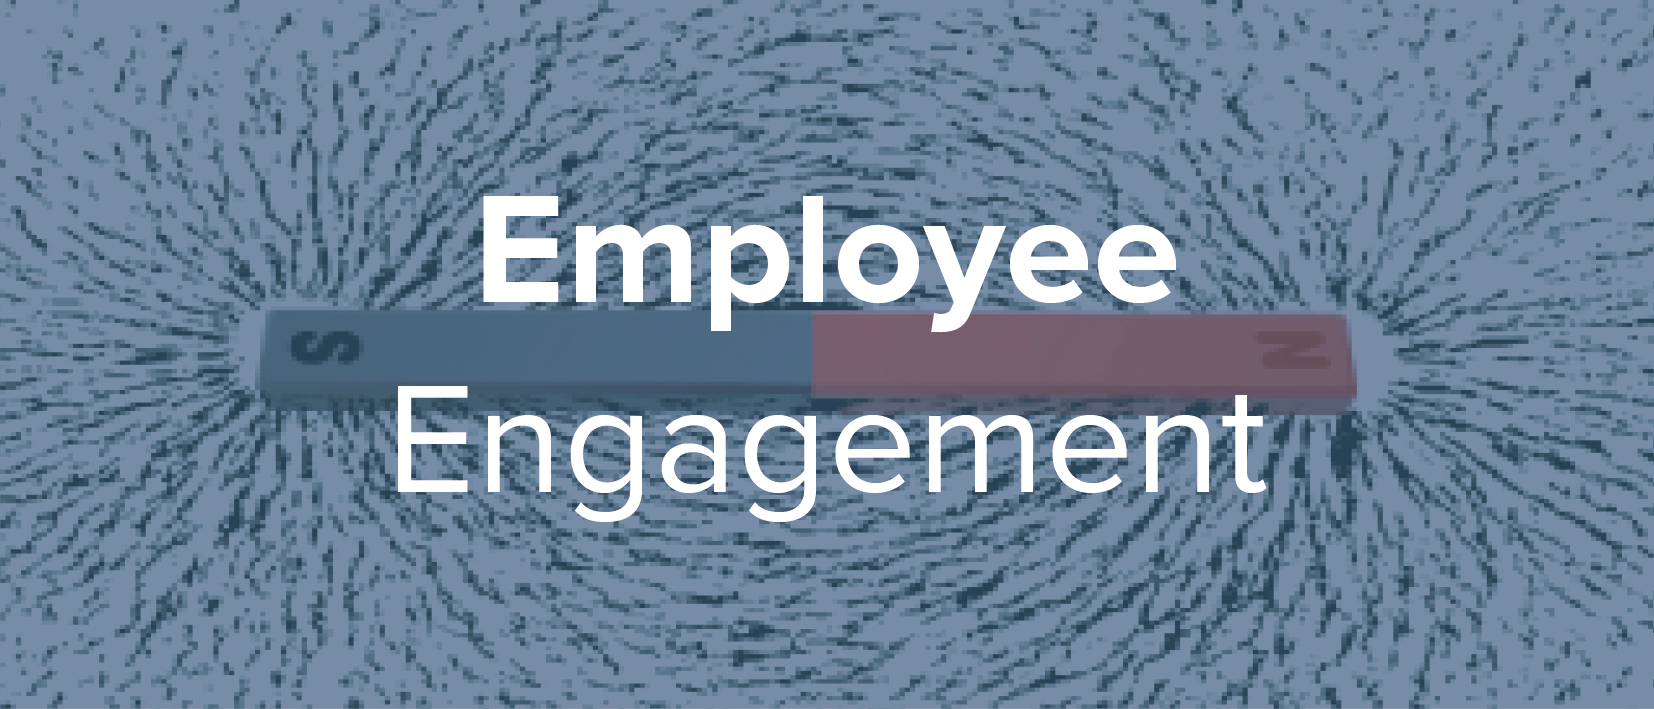 We help leaders and managers develop practical strategies and tools to promote outstanding employee engagement and create cultures that rock.